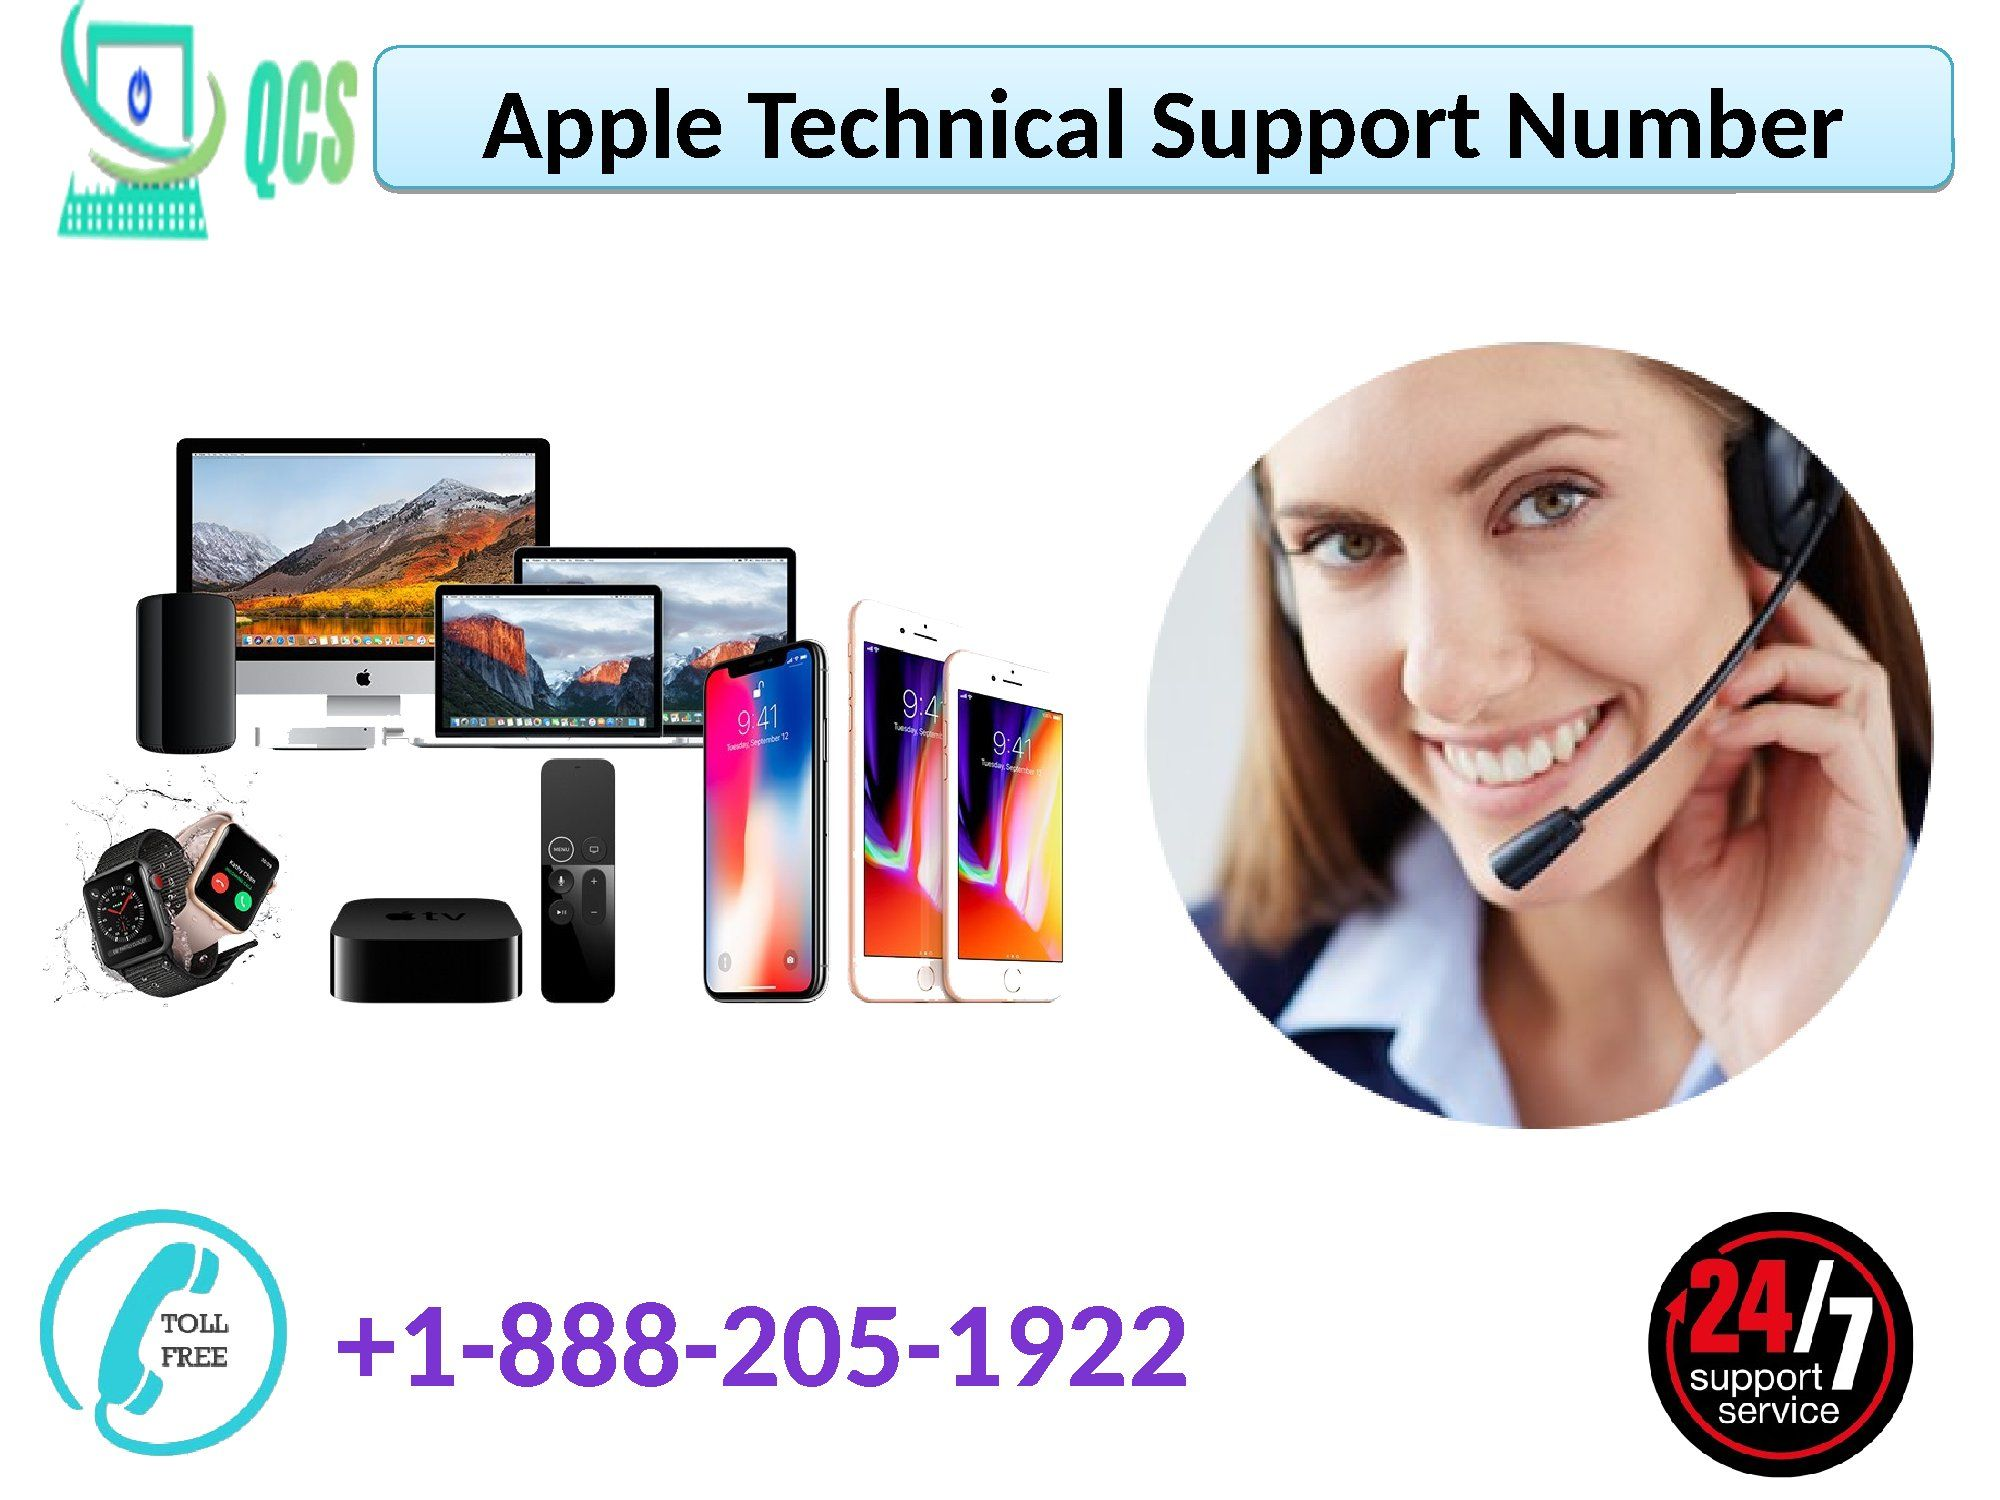 Pin on Apple Technical Support - 1-888-920-6094